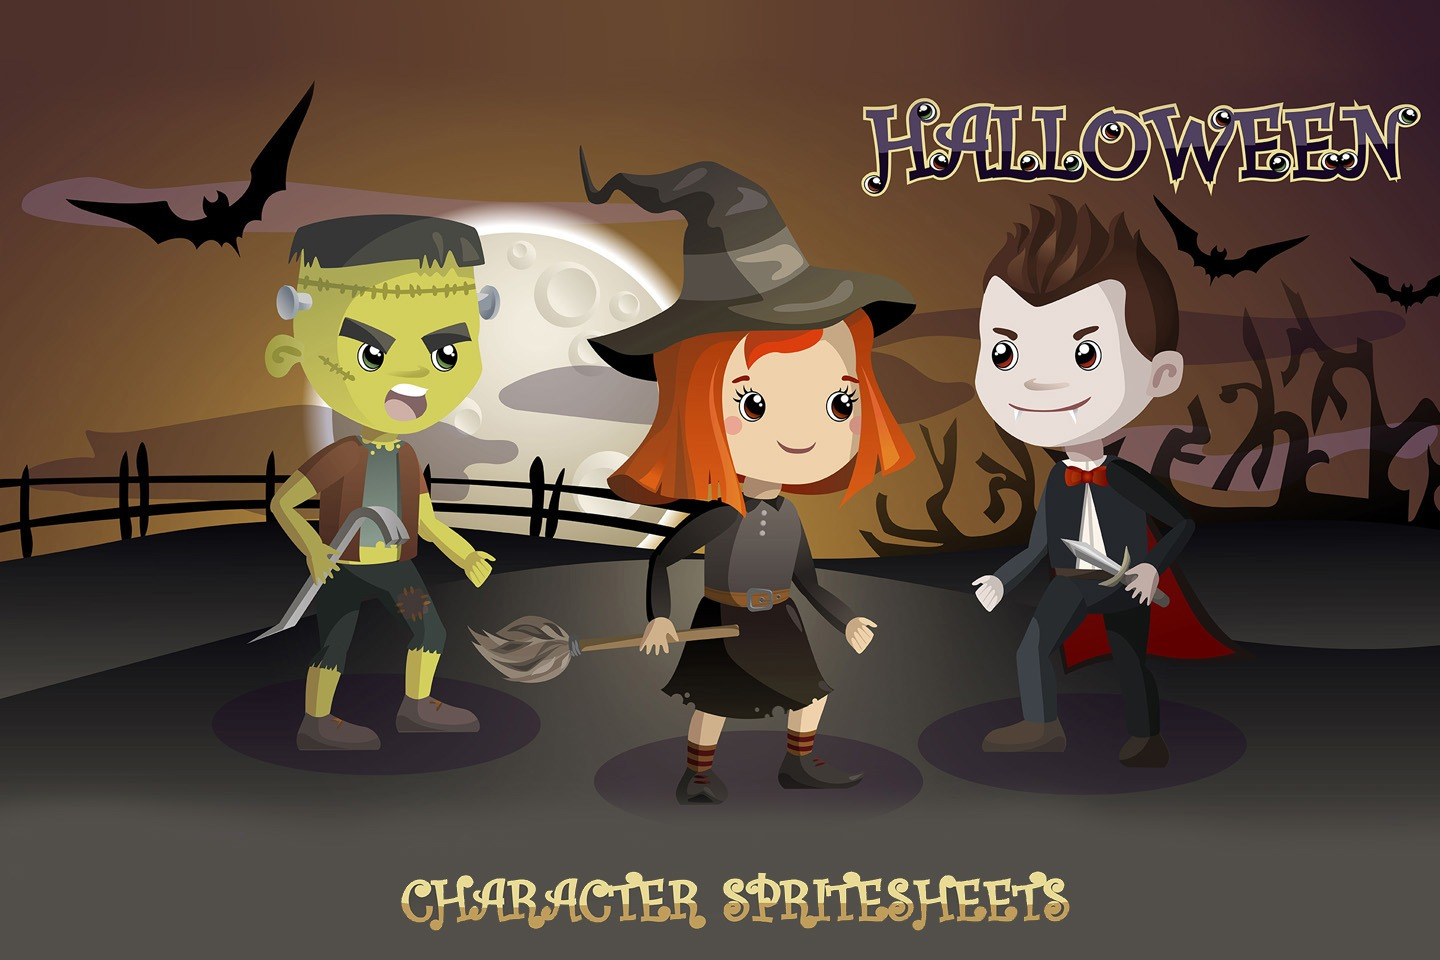 2d Character Design Software Free Download : Halloween d game character sprite sheets craftpix